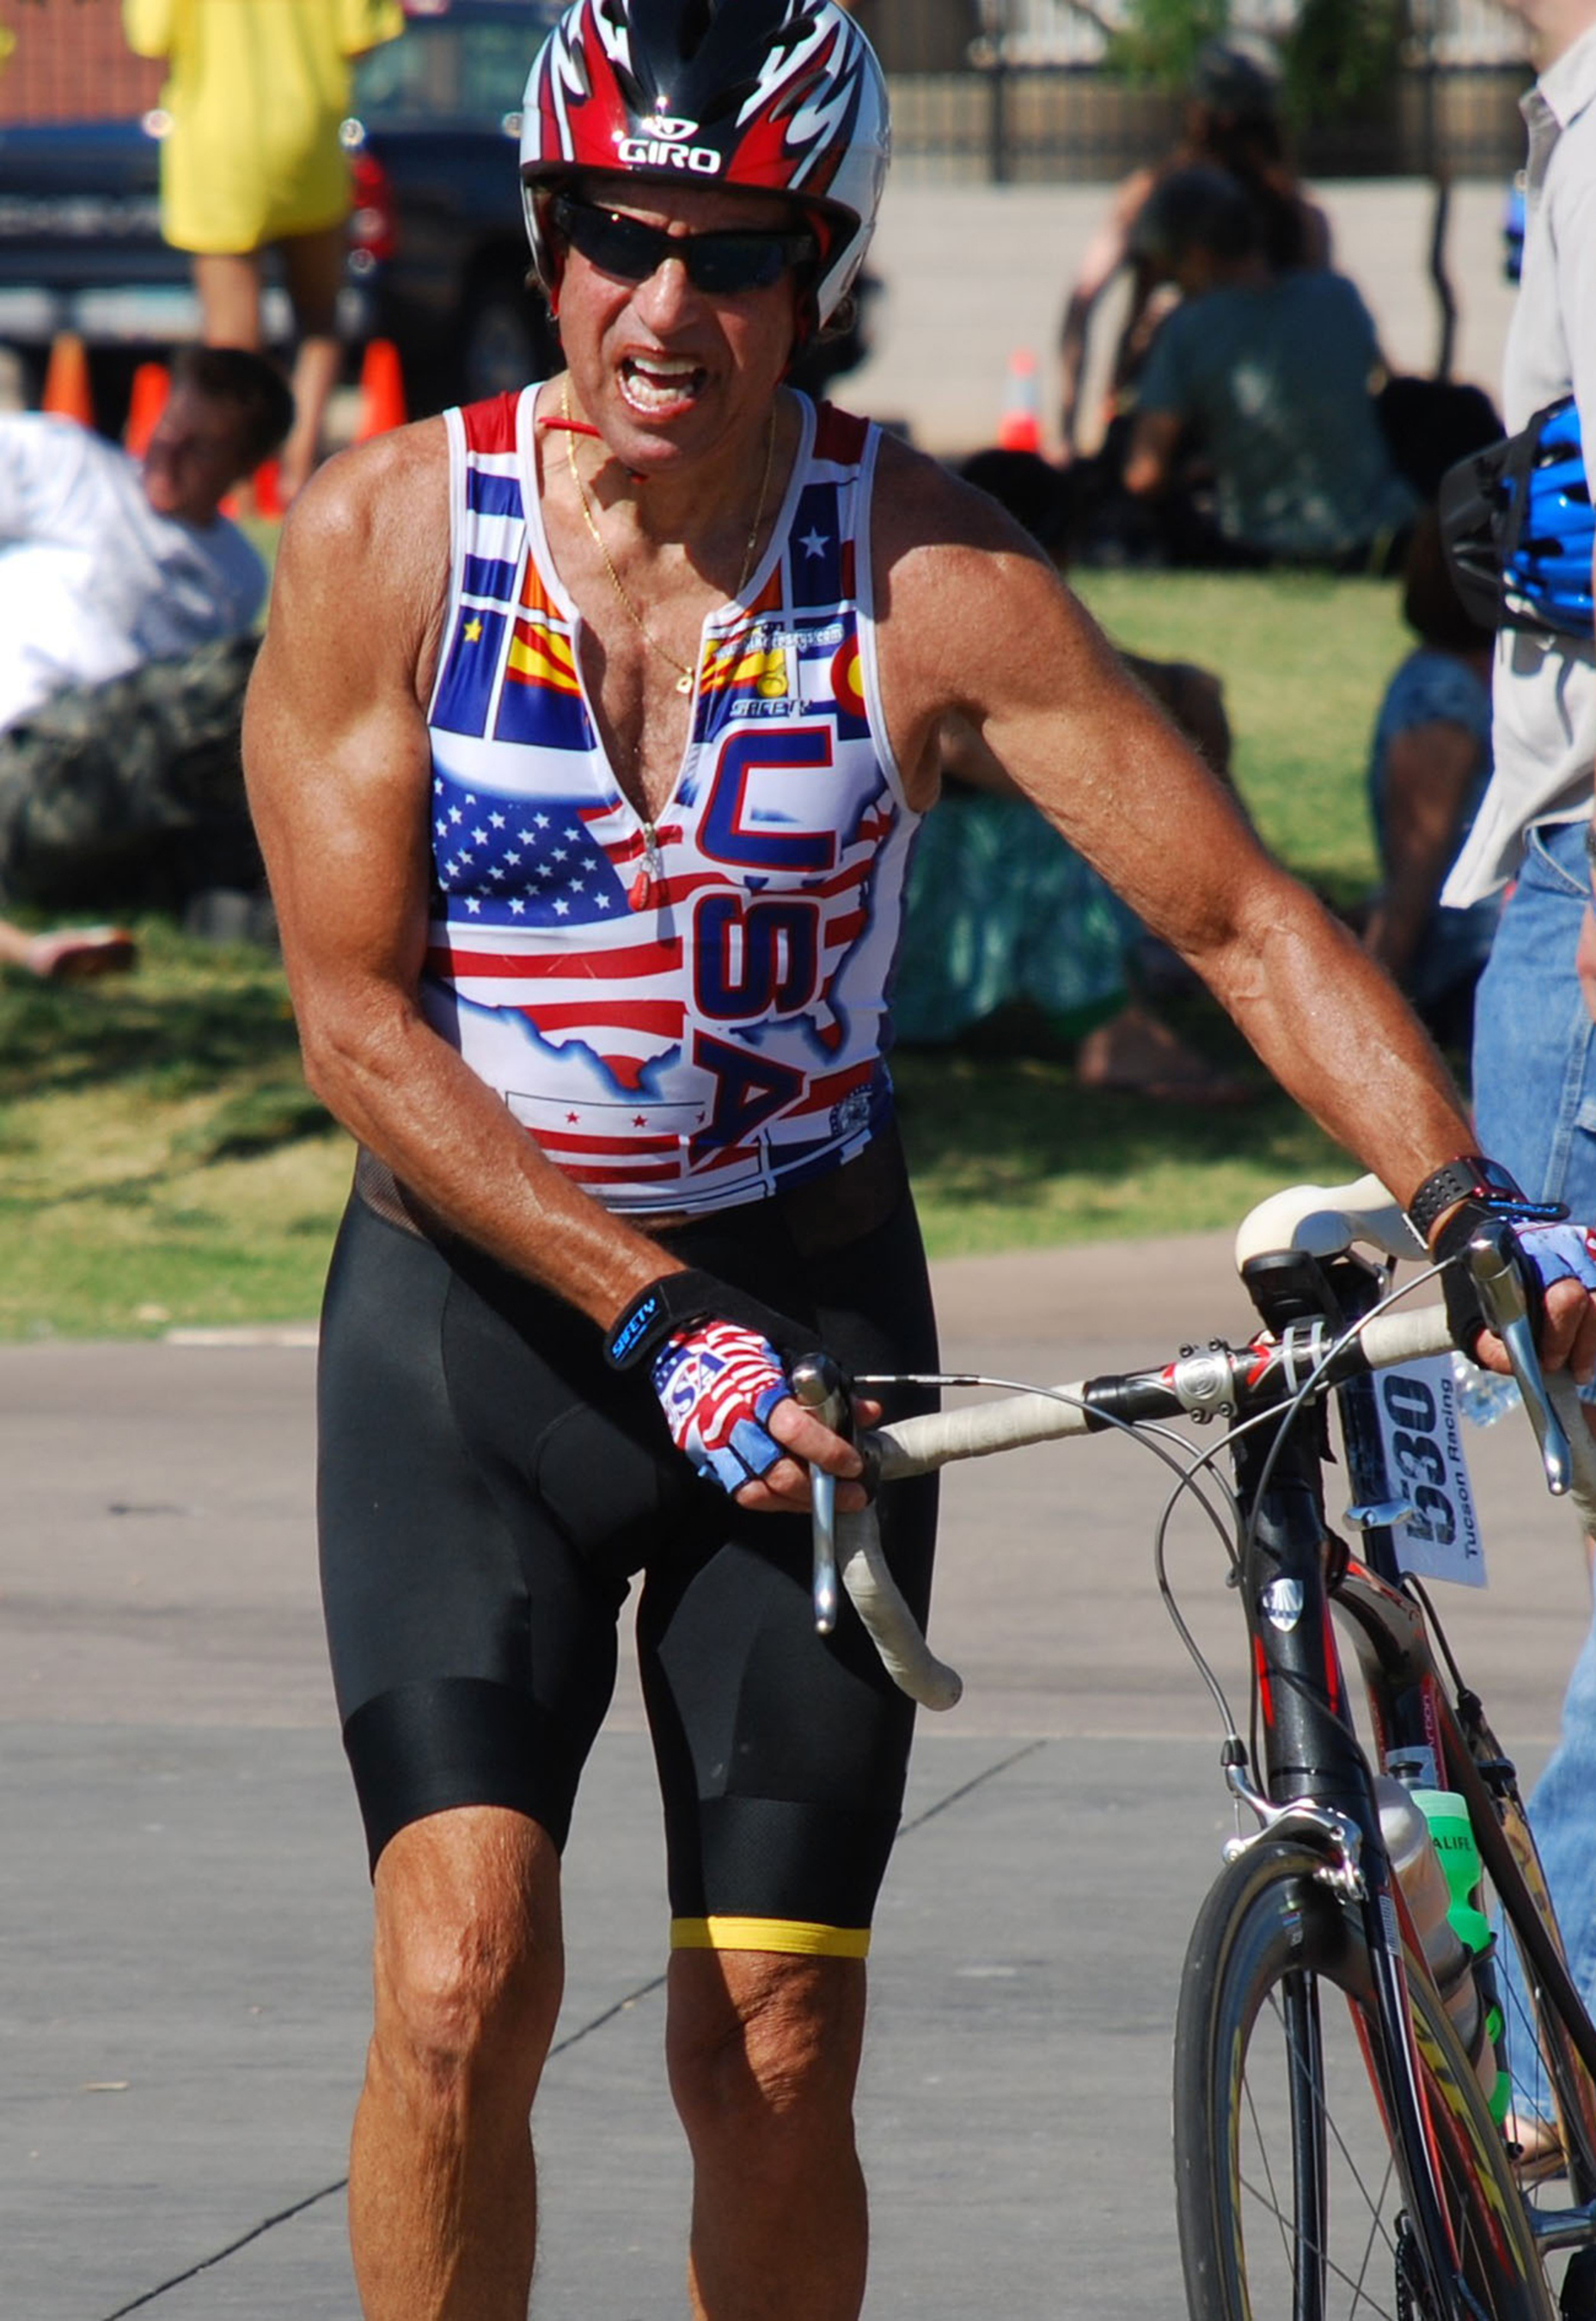 SynCardia Total Artificial Heart recipient Bill Wohl wins first place in the men's open relay at the 2007 Tempe, Arizona International Triathlon. Wohl received a donor heart transplant in February 2000 after 159 days of support on the SynCardia Heart. (PRNewsFoto/SynCardia Systems, Inc.)